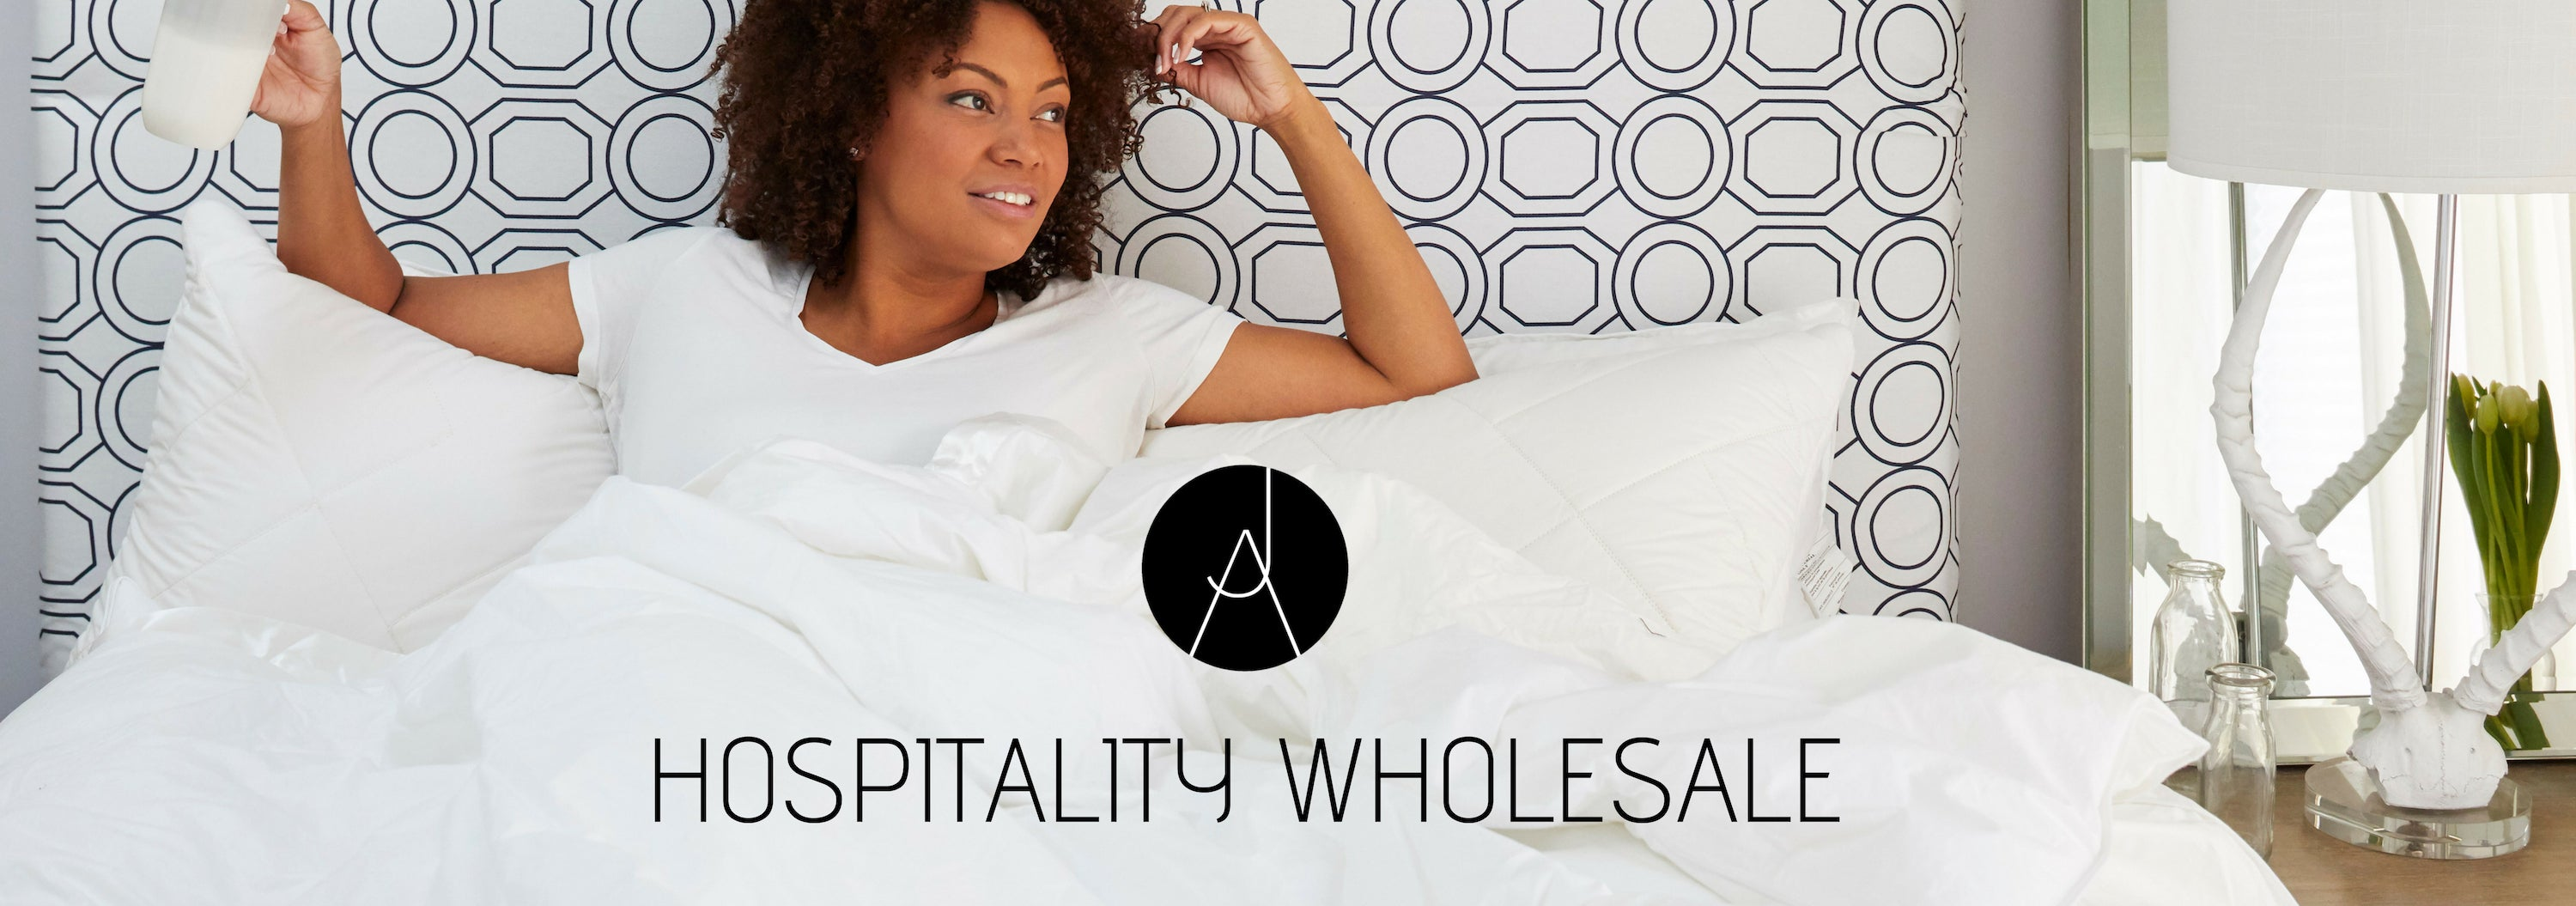 JA HOSPITALITY WHOLESALE, WOMEN IN BED